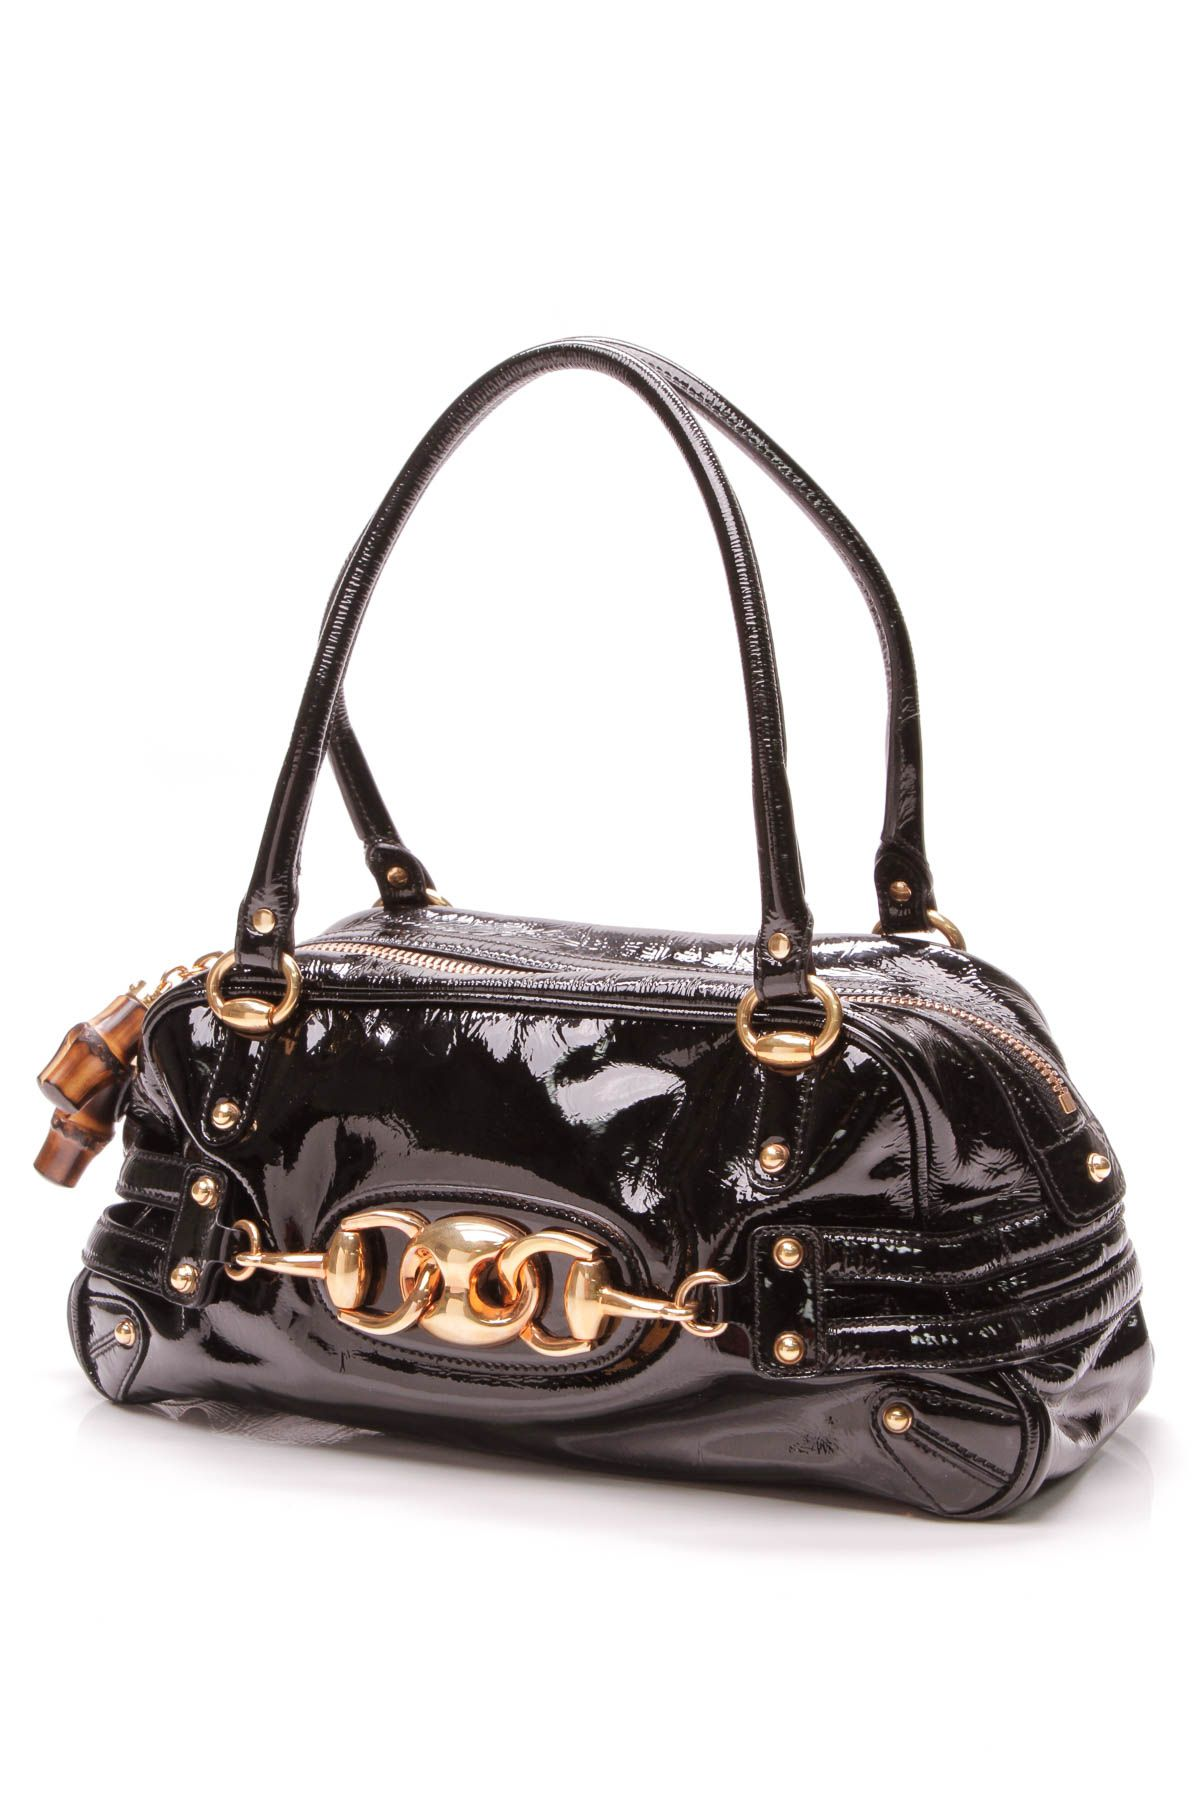 8a9217234ca060 Wave Boston Bag - Black Patent Leather in 2019 | Gucci Glam | Bags ...